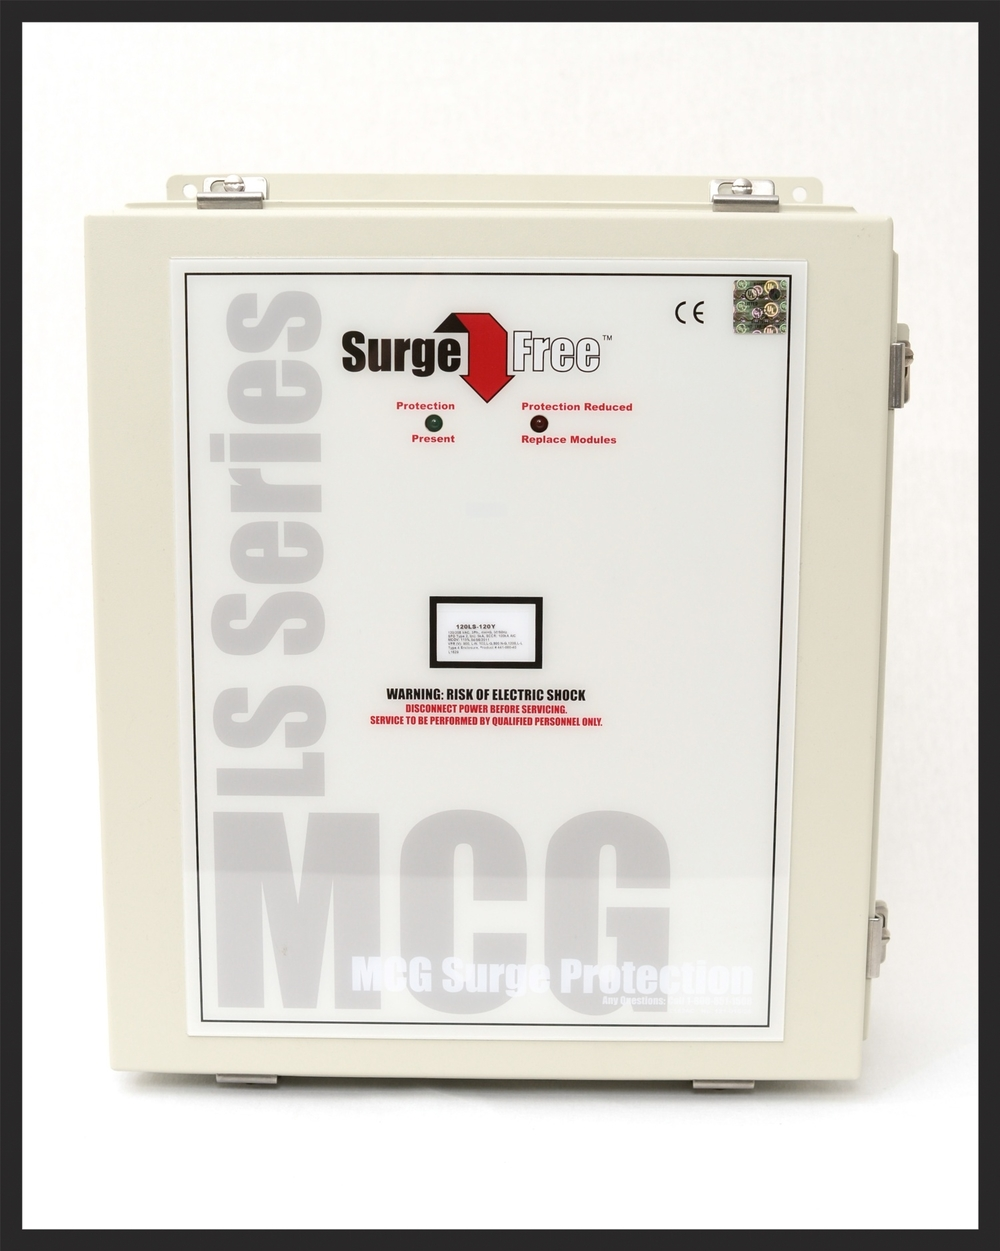 Options Available: Internal Disconnect • Upgradeable Diagnostics: Surge Event Counter, Beeper, & Status Relay (1 Form C Contacts) • NEMA 4X Enclosure • Low Impedance Micro-Z cable, flush-mount kit    (Click here)